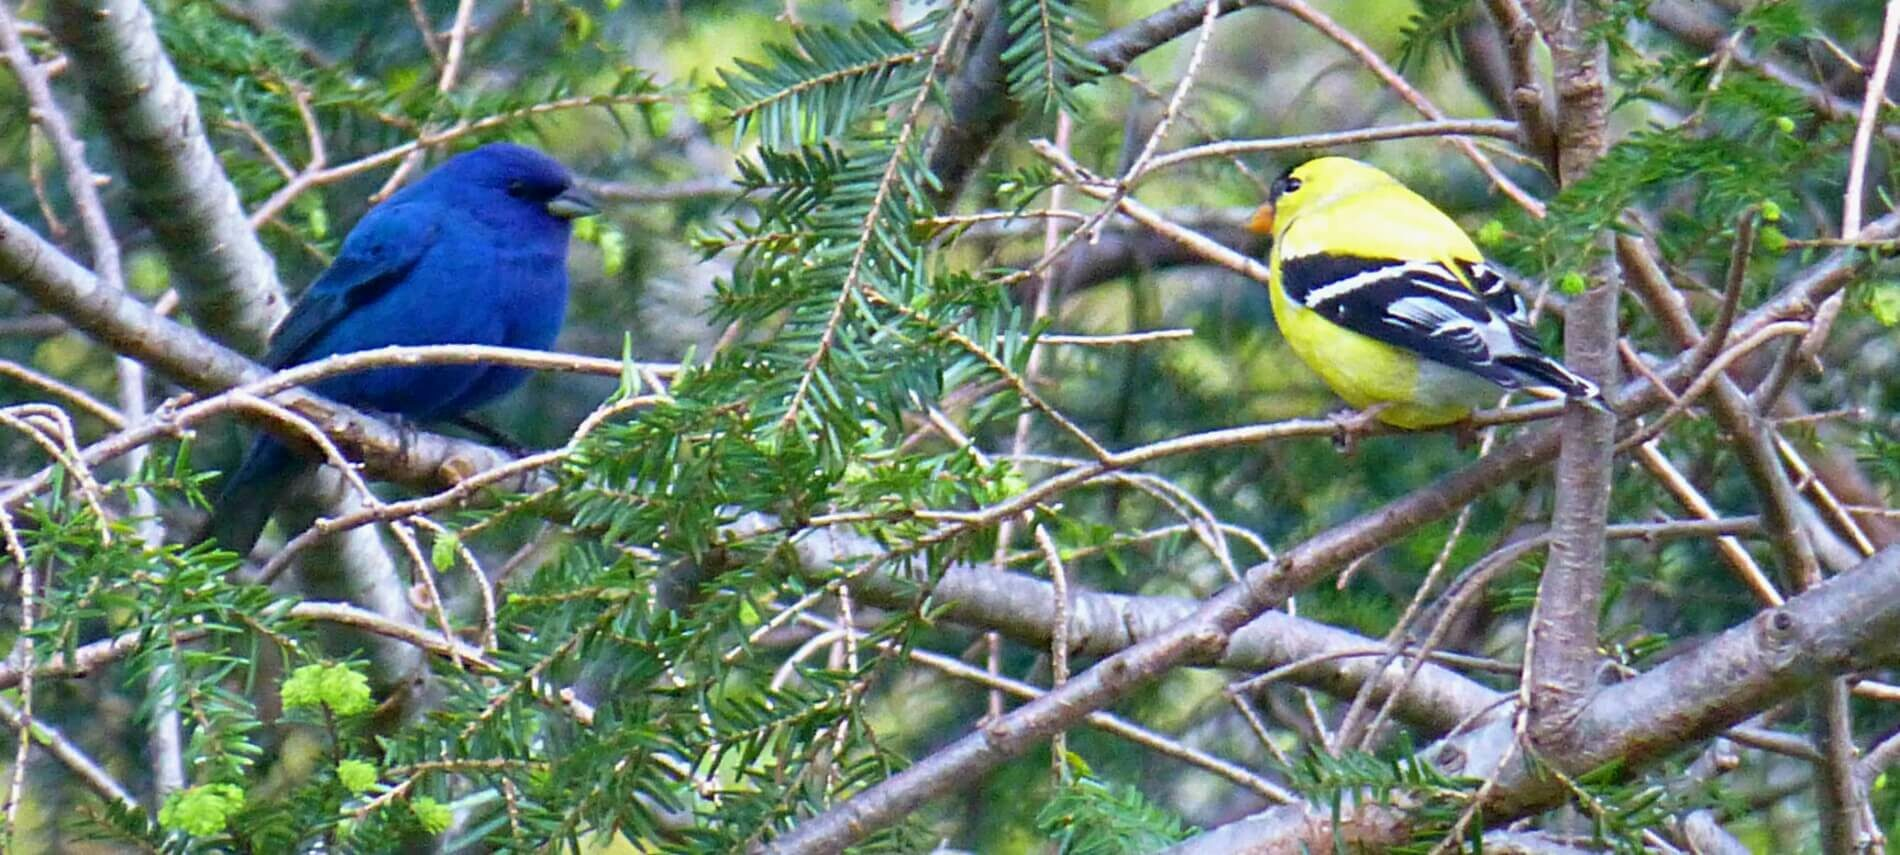 Two stout birds facing each other on evergreen tree branches, one bright blue and the other yellow with black and white wings